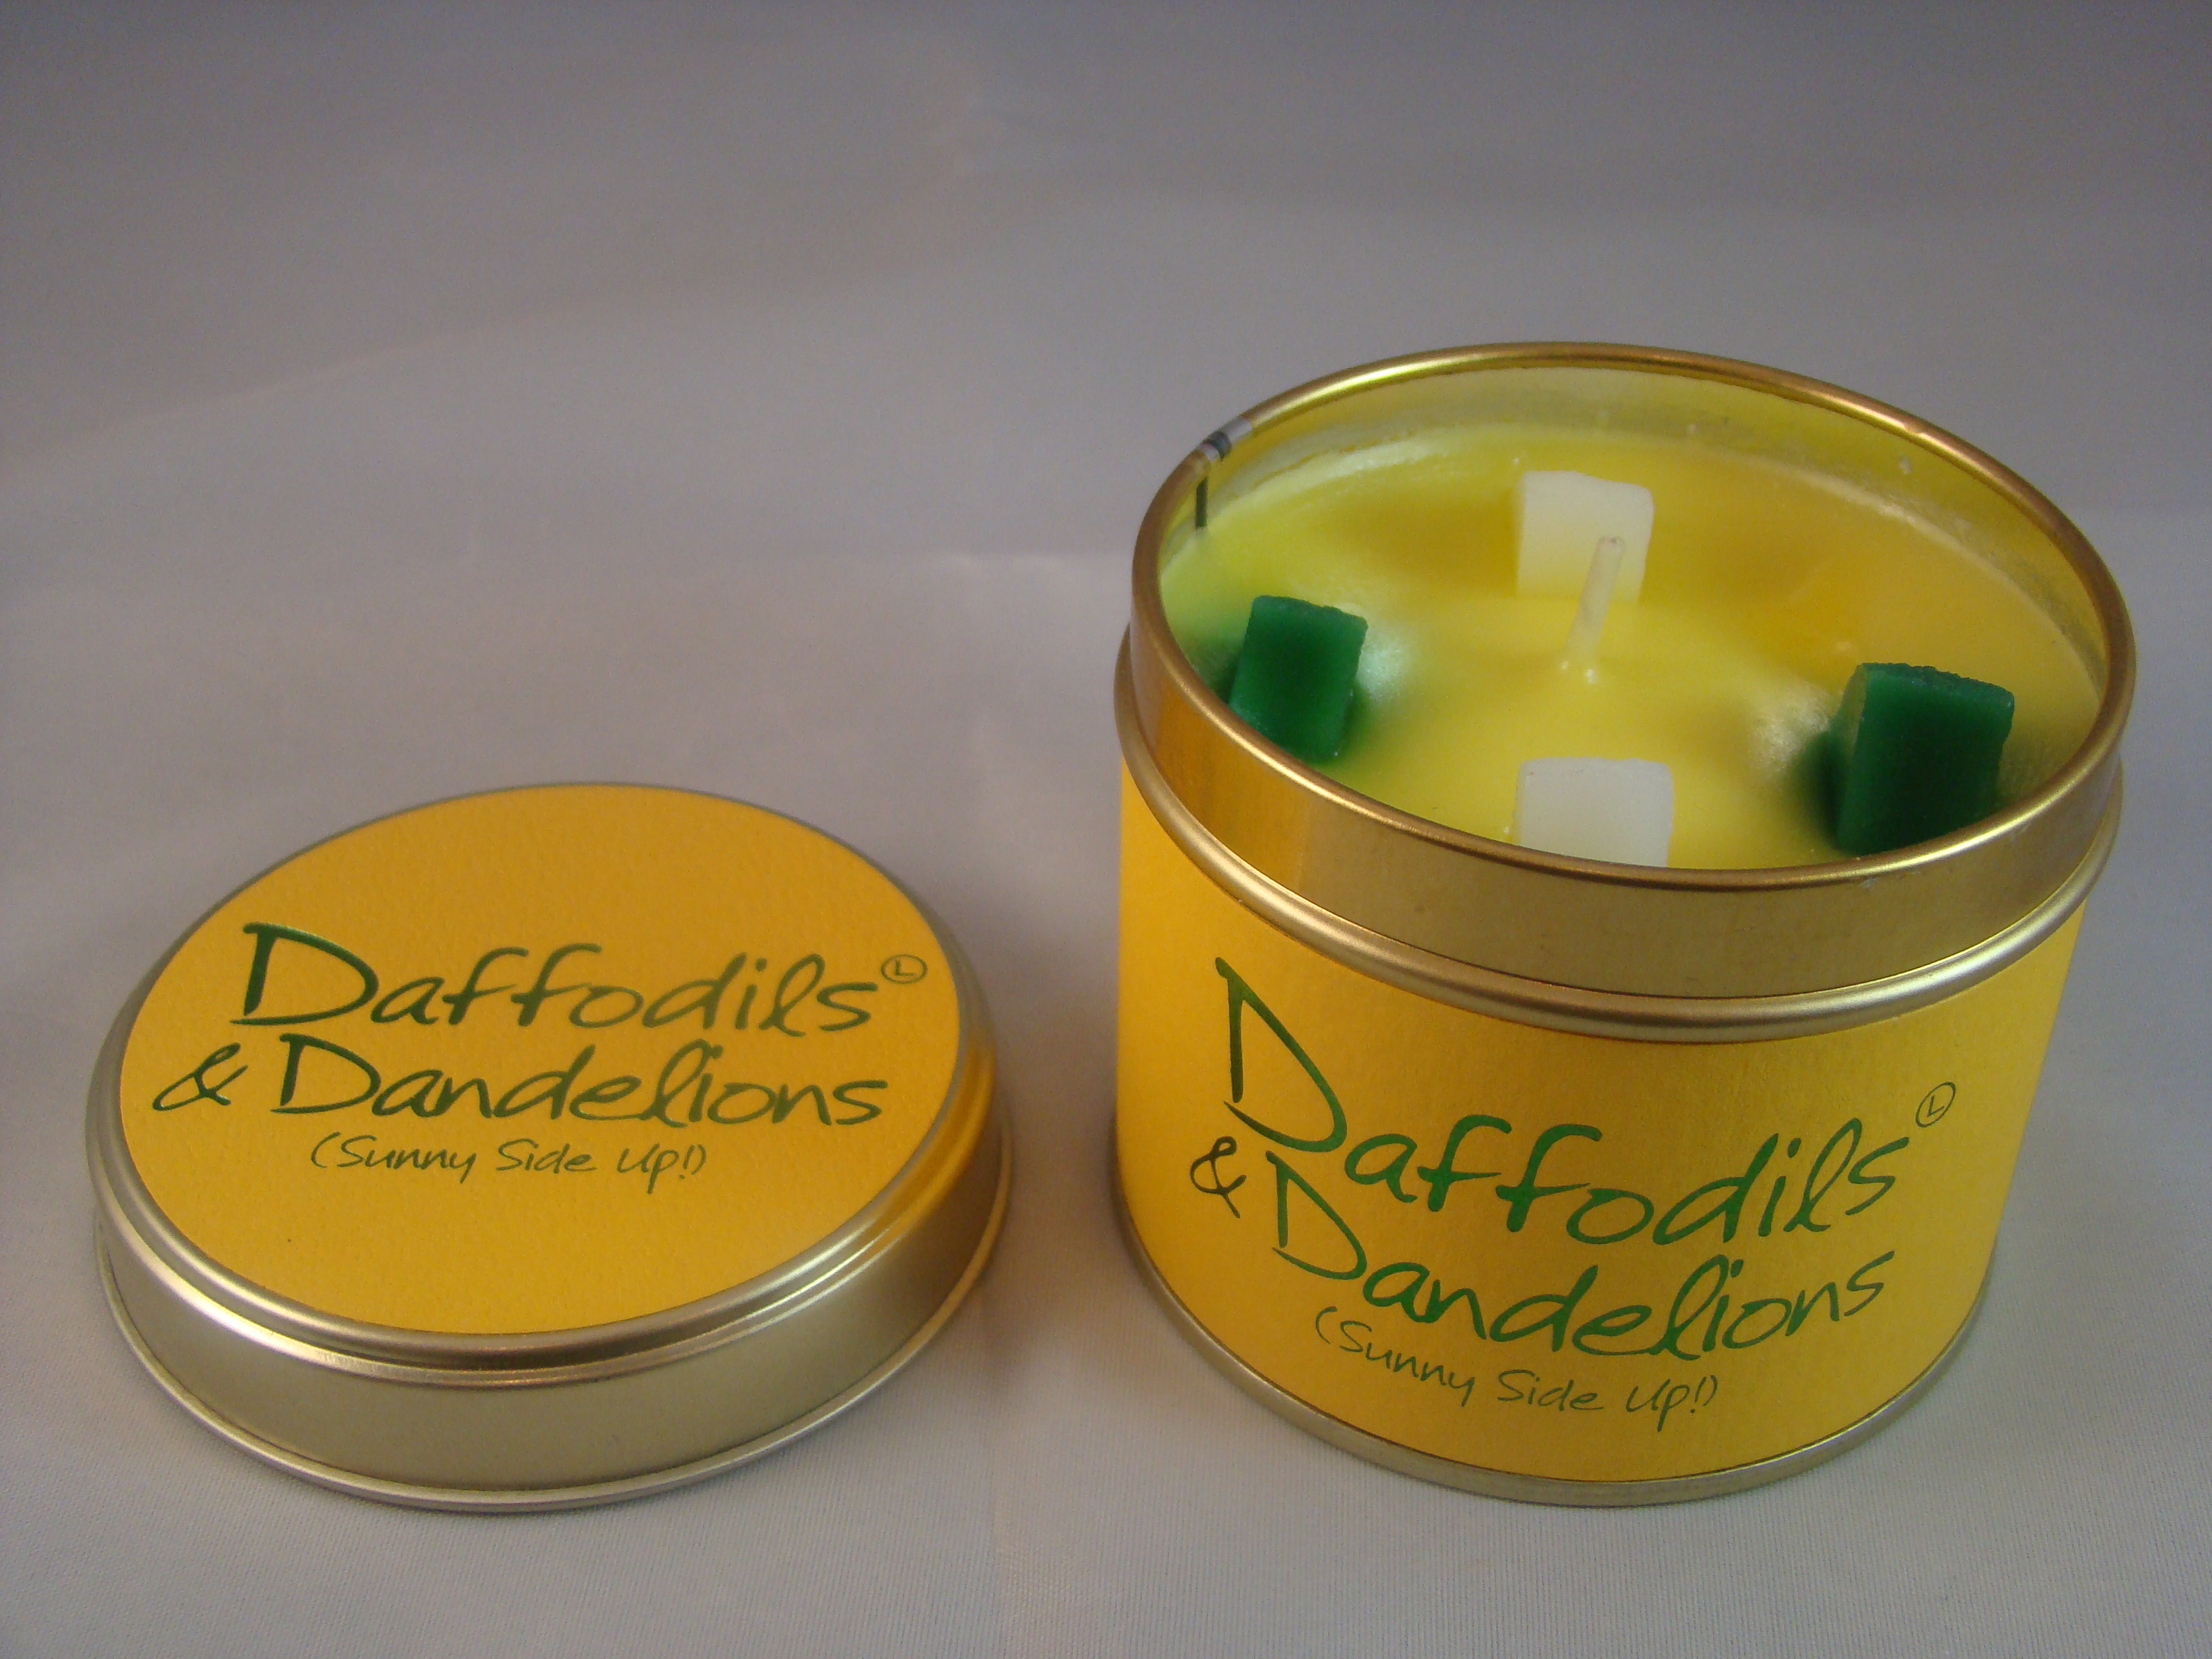 Daffodils and Dandelions scented candle